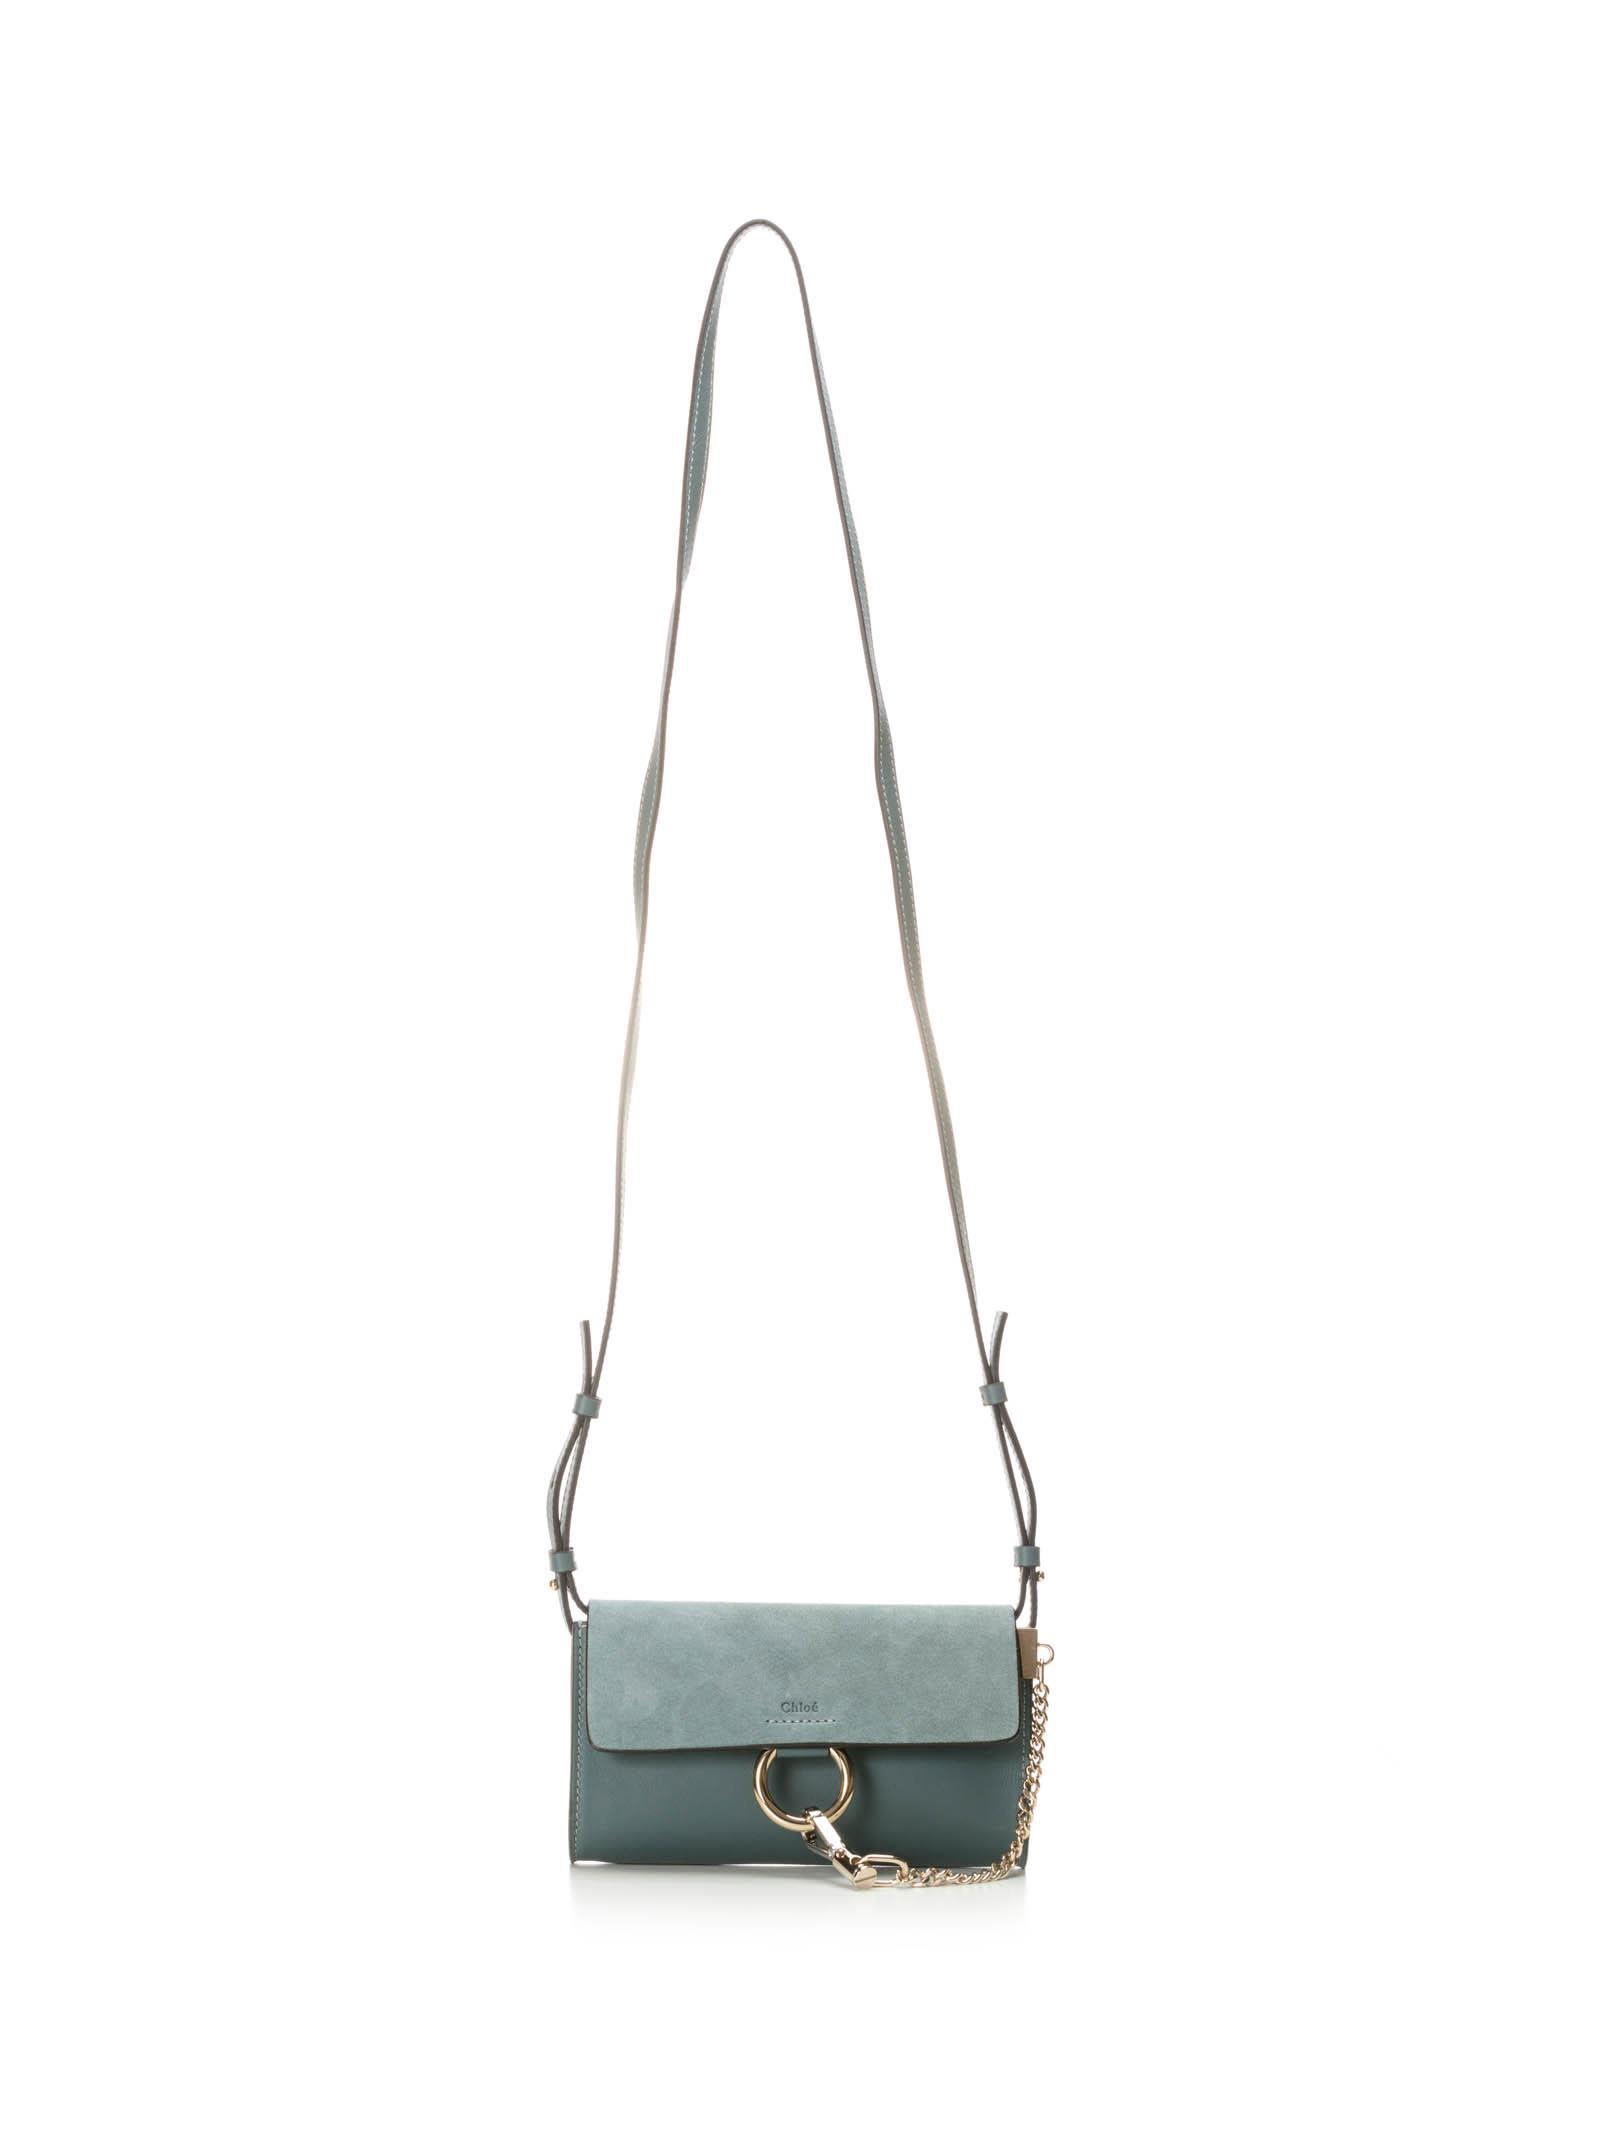 CHLOÉ CHLOE FAYE LIGHT BLUE WALLET ON STRAP